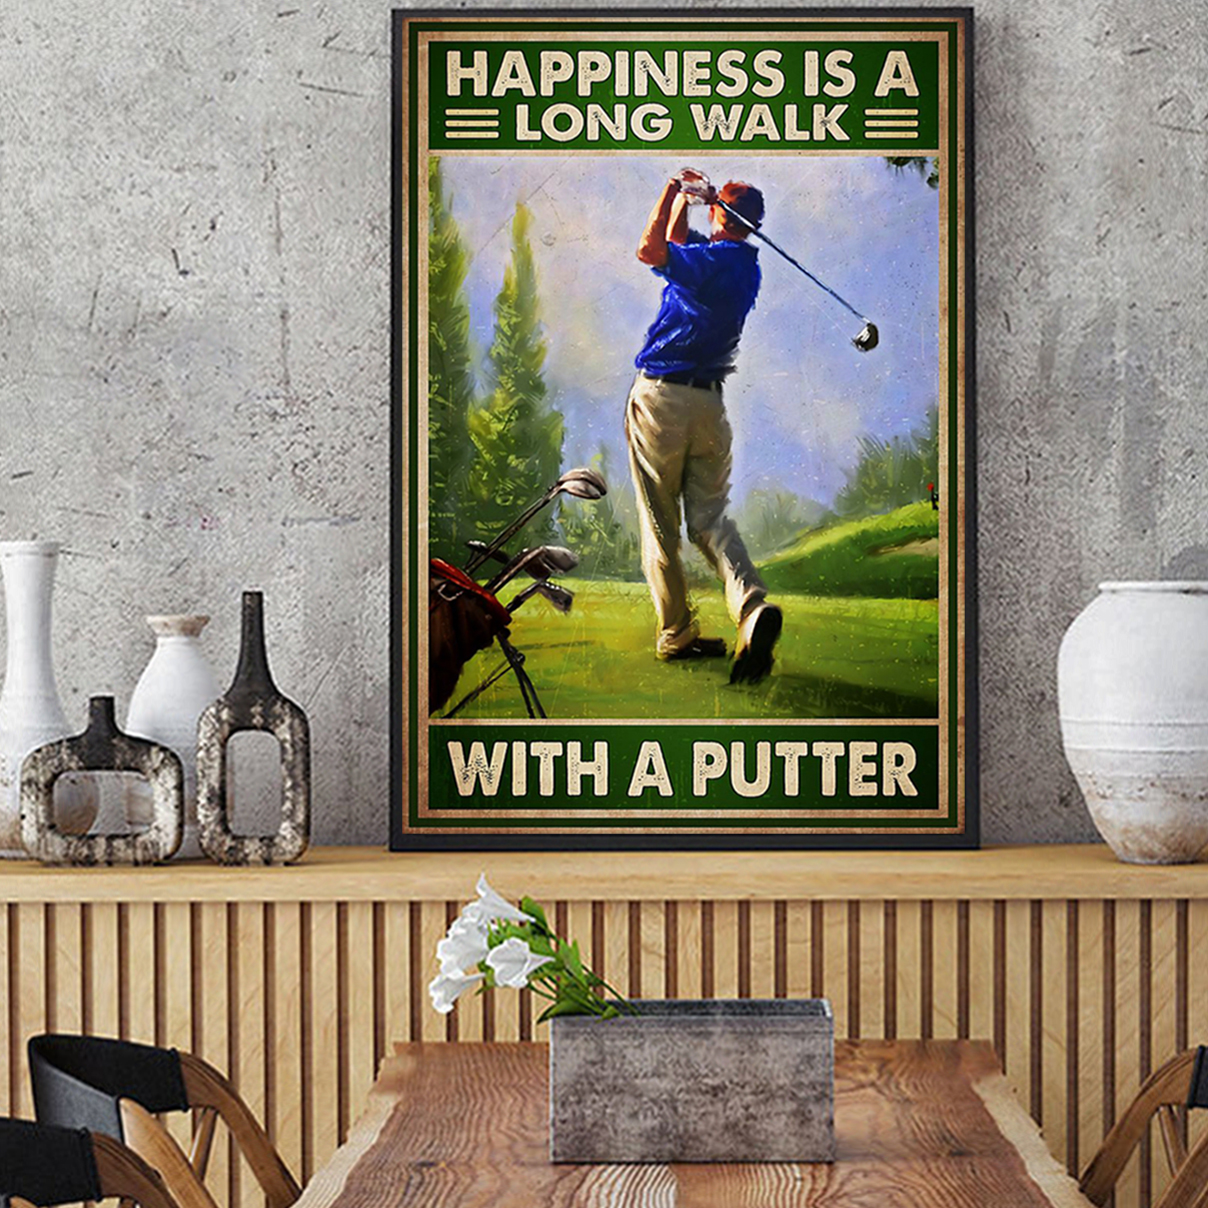 Happiness is a long walk with a putter poster A2